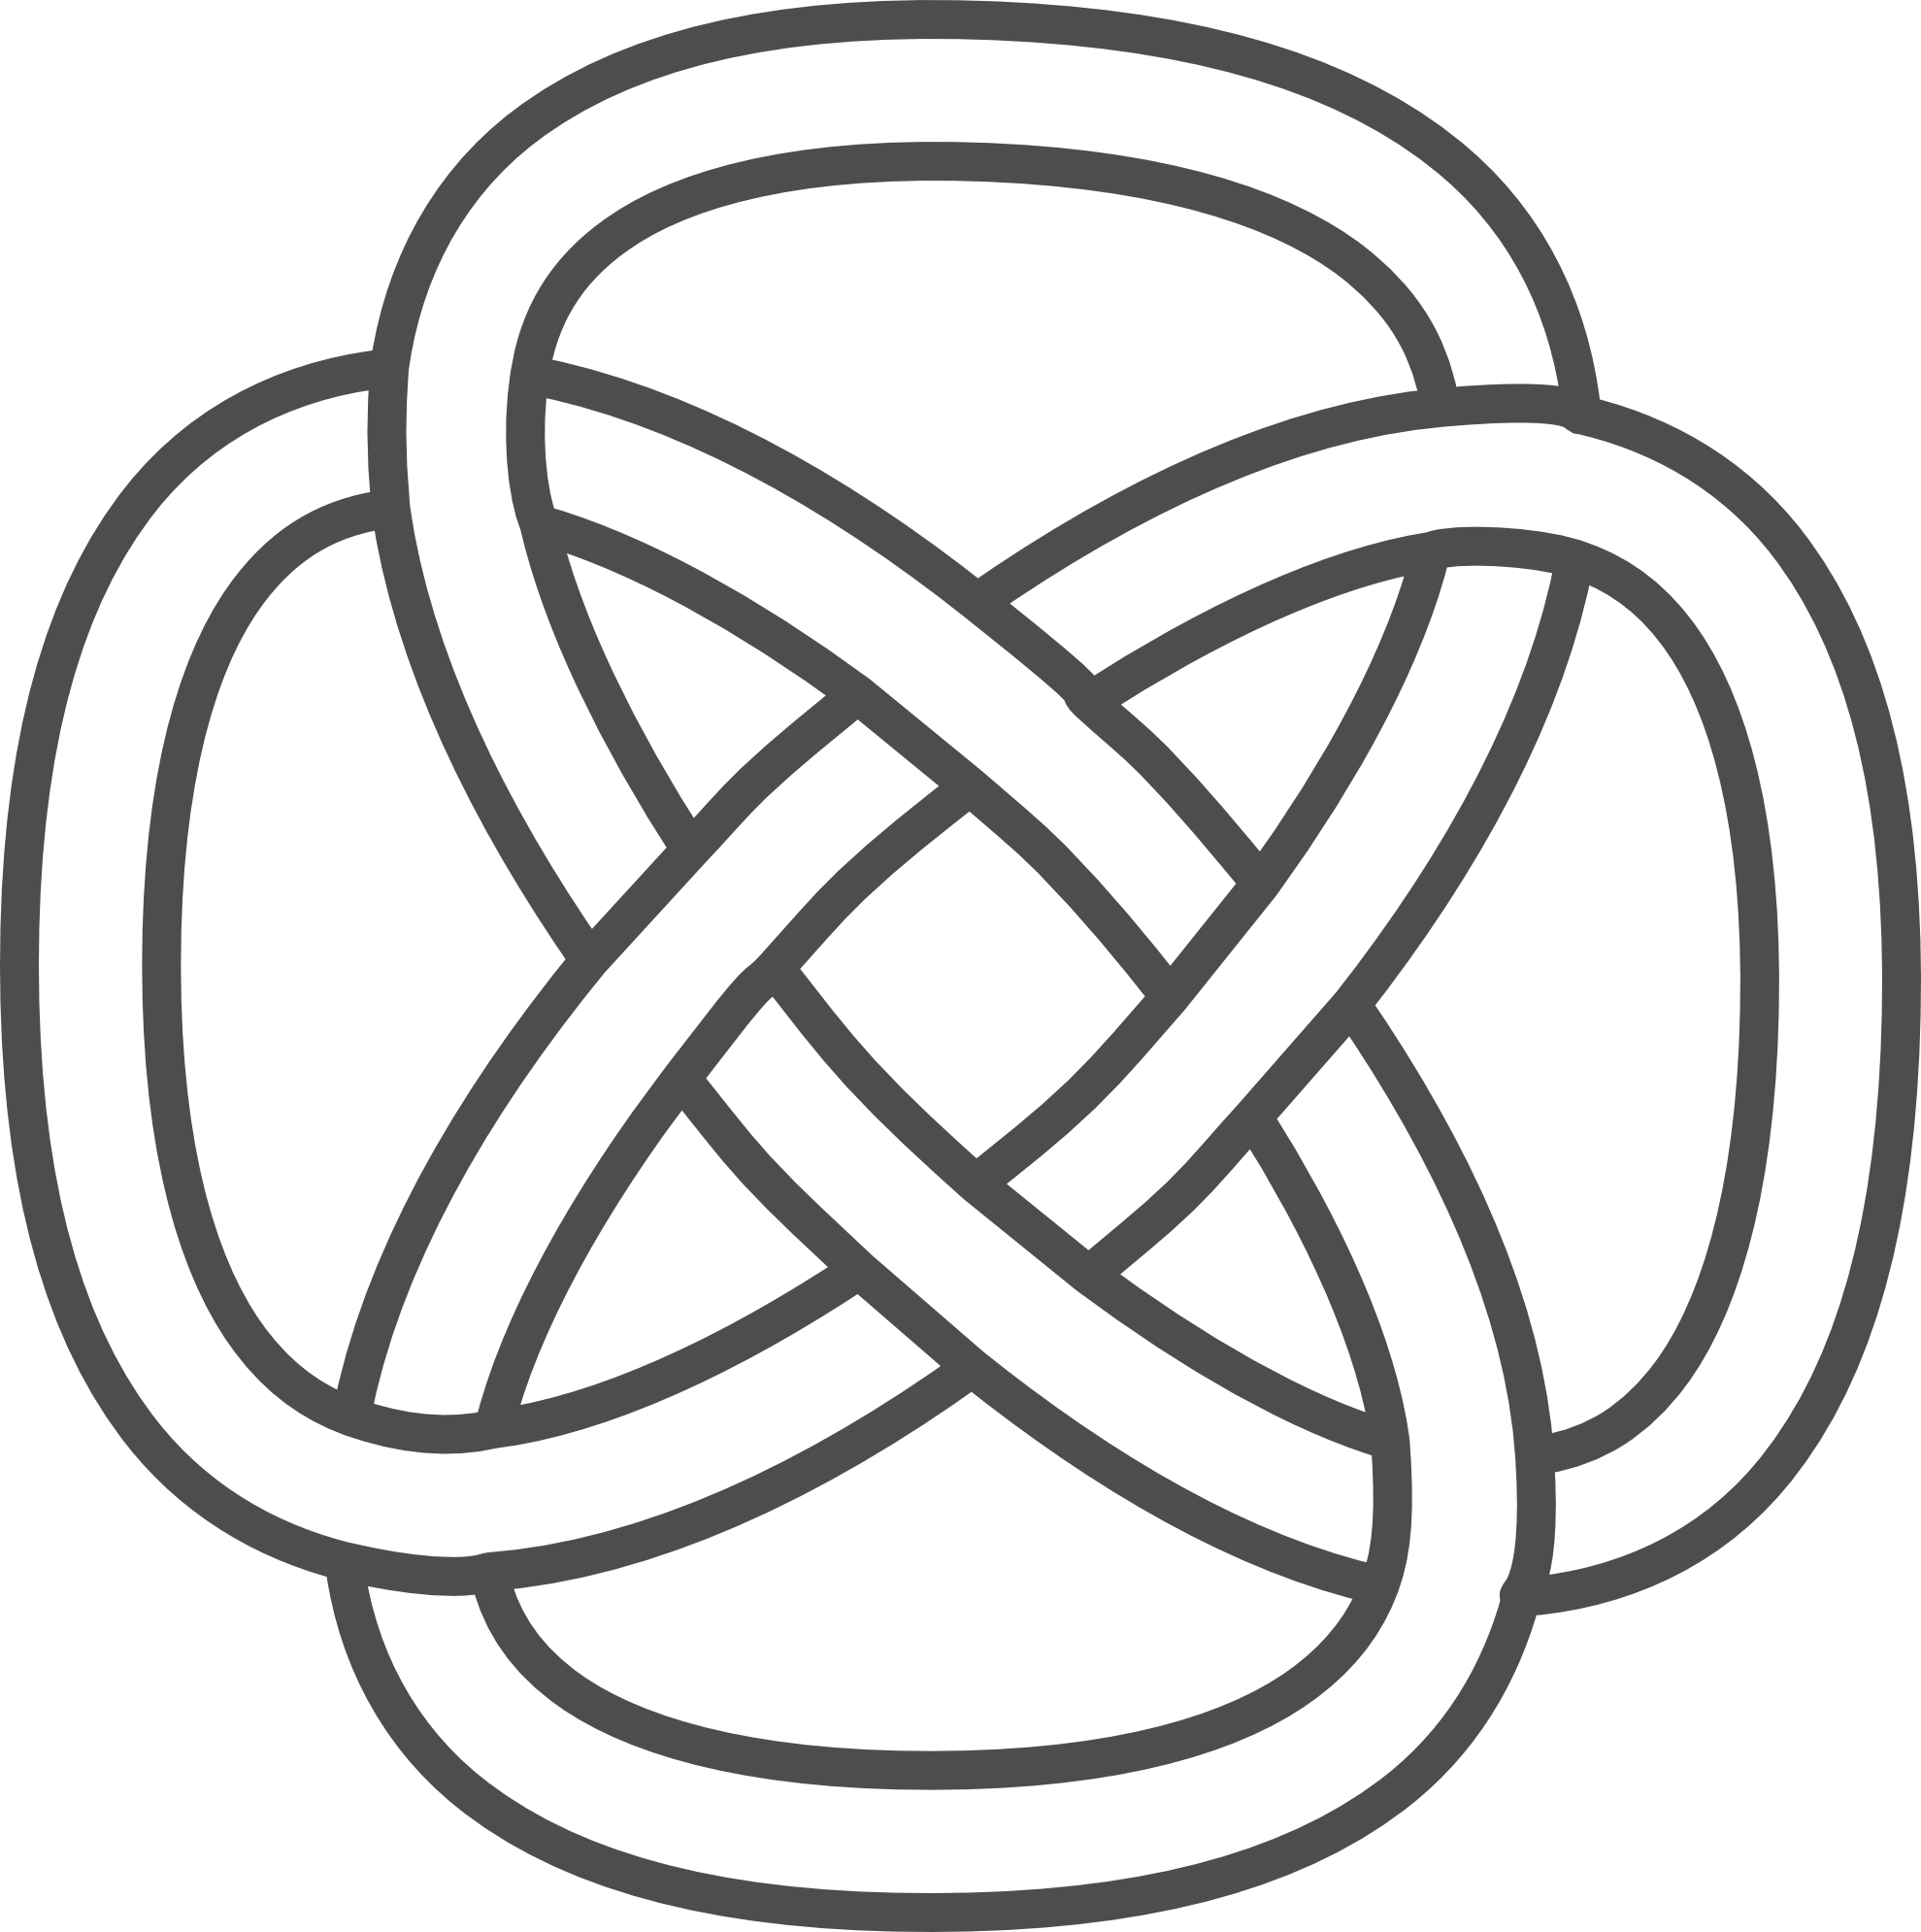 1979x1990 Celtic Knot Coloring Pages